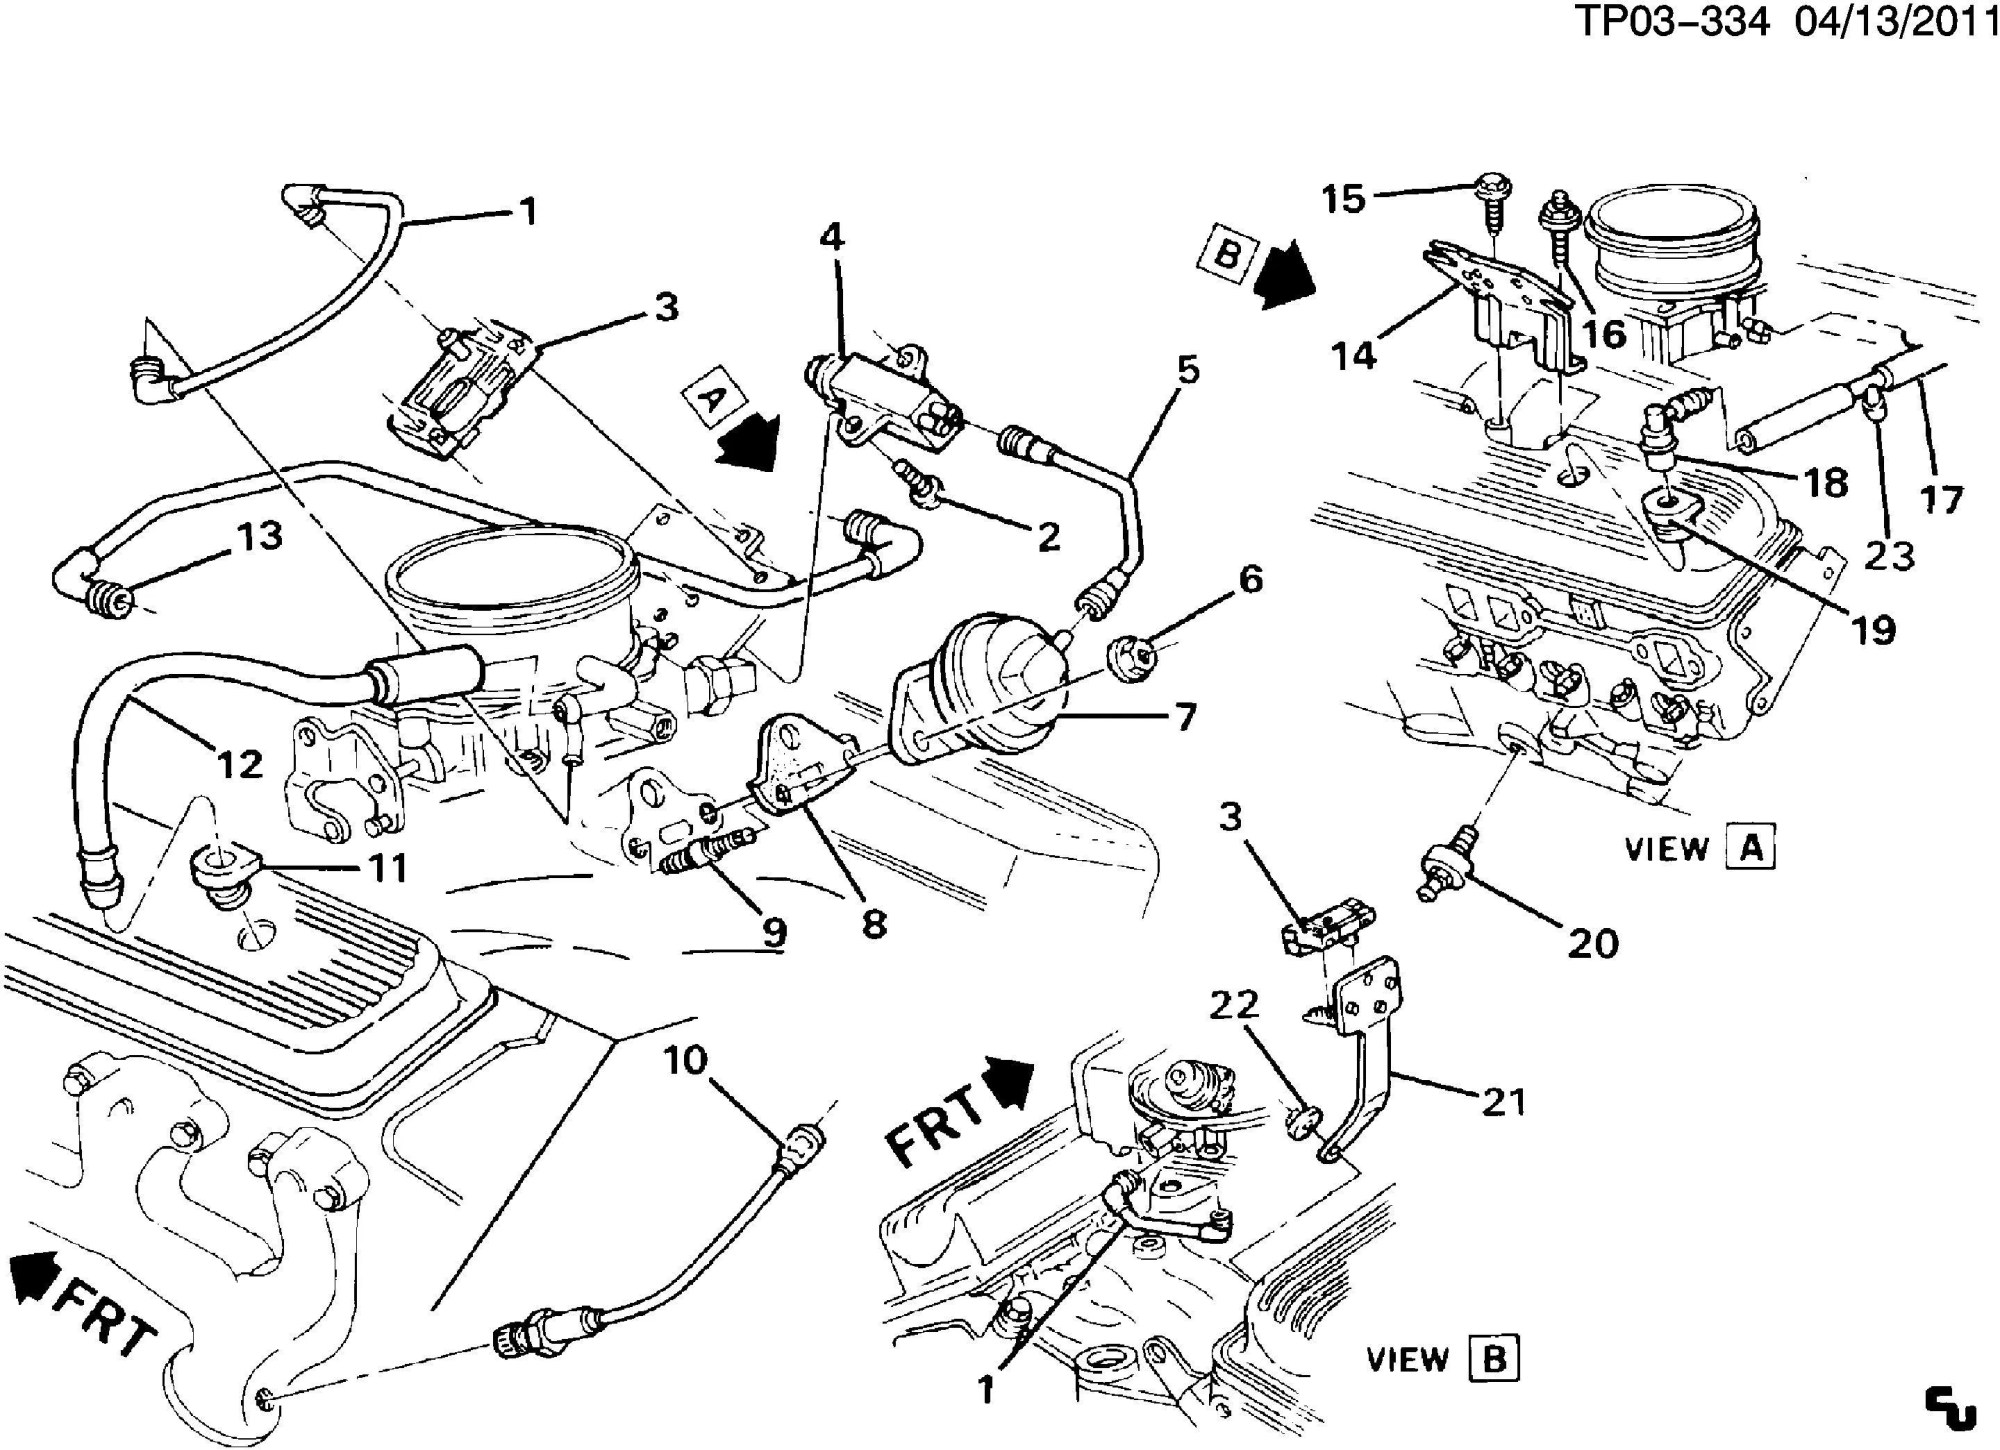 hight resolution of chevy 5 7 engine diagram data schematic diagram 5 7l chevy engine parts diagram wiring diagram